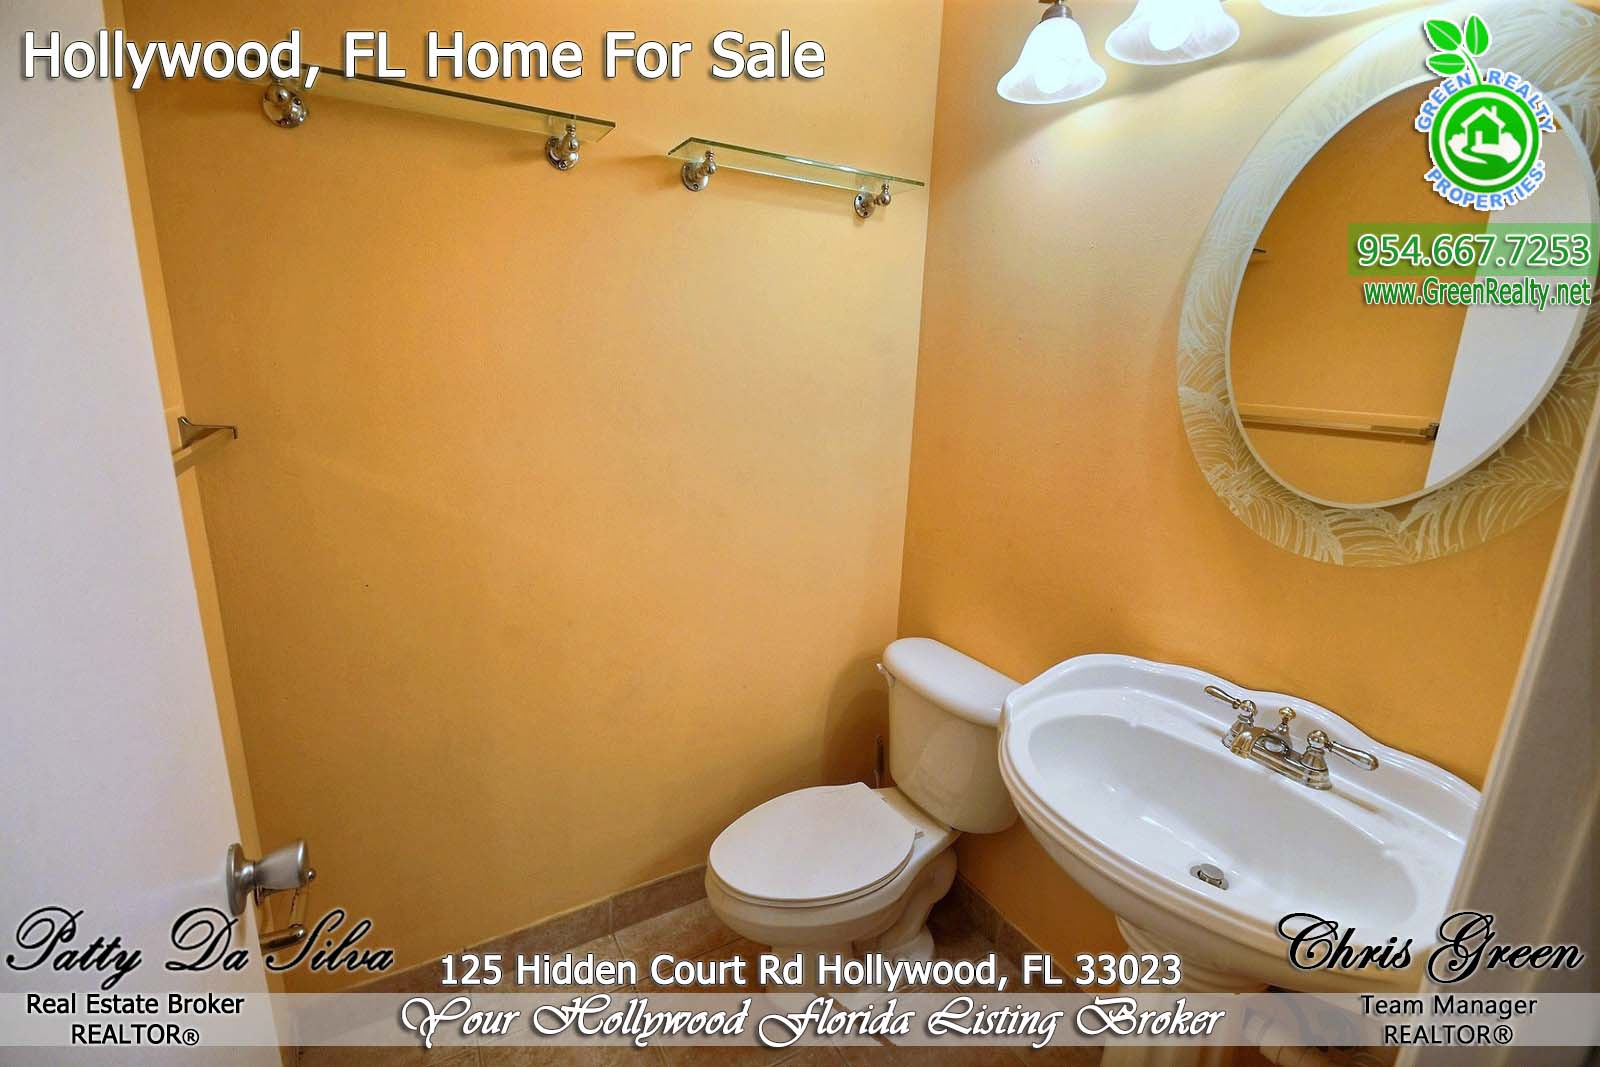 11 Hollywood Florida Homes For Sale (1)